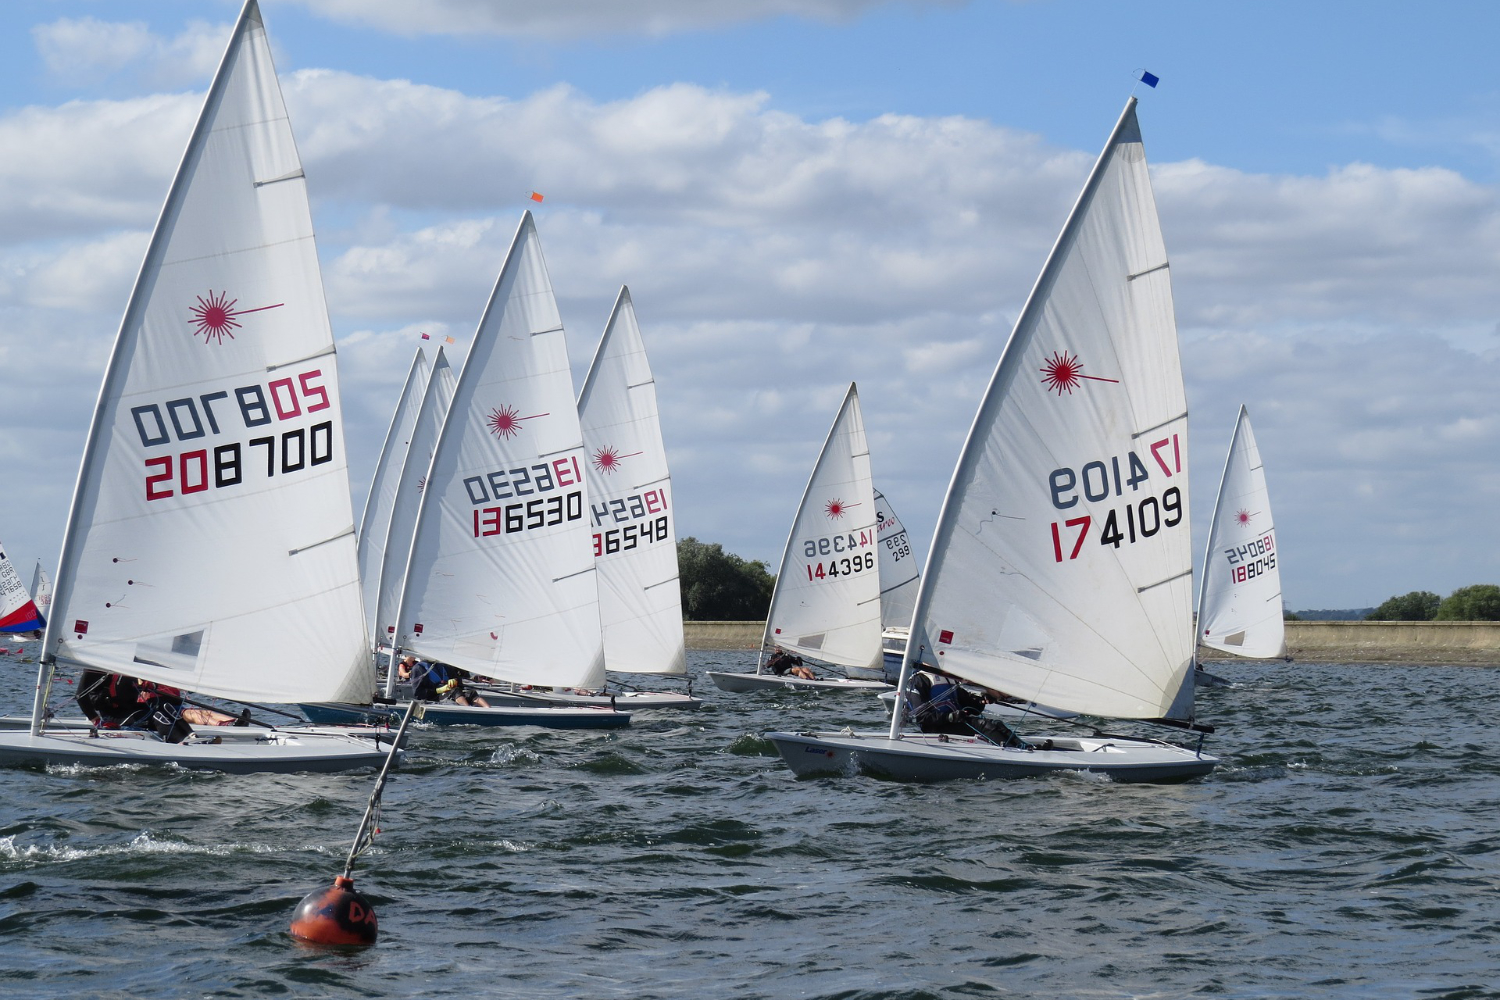 laser sailors racing on cold day